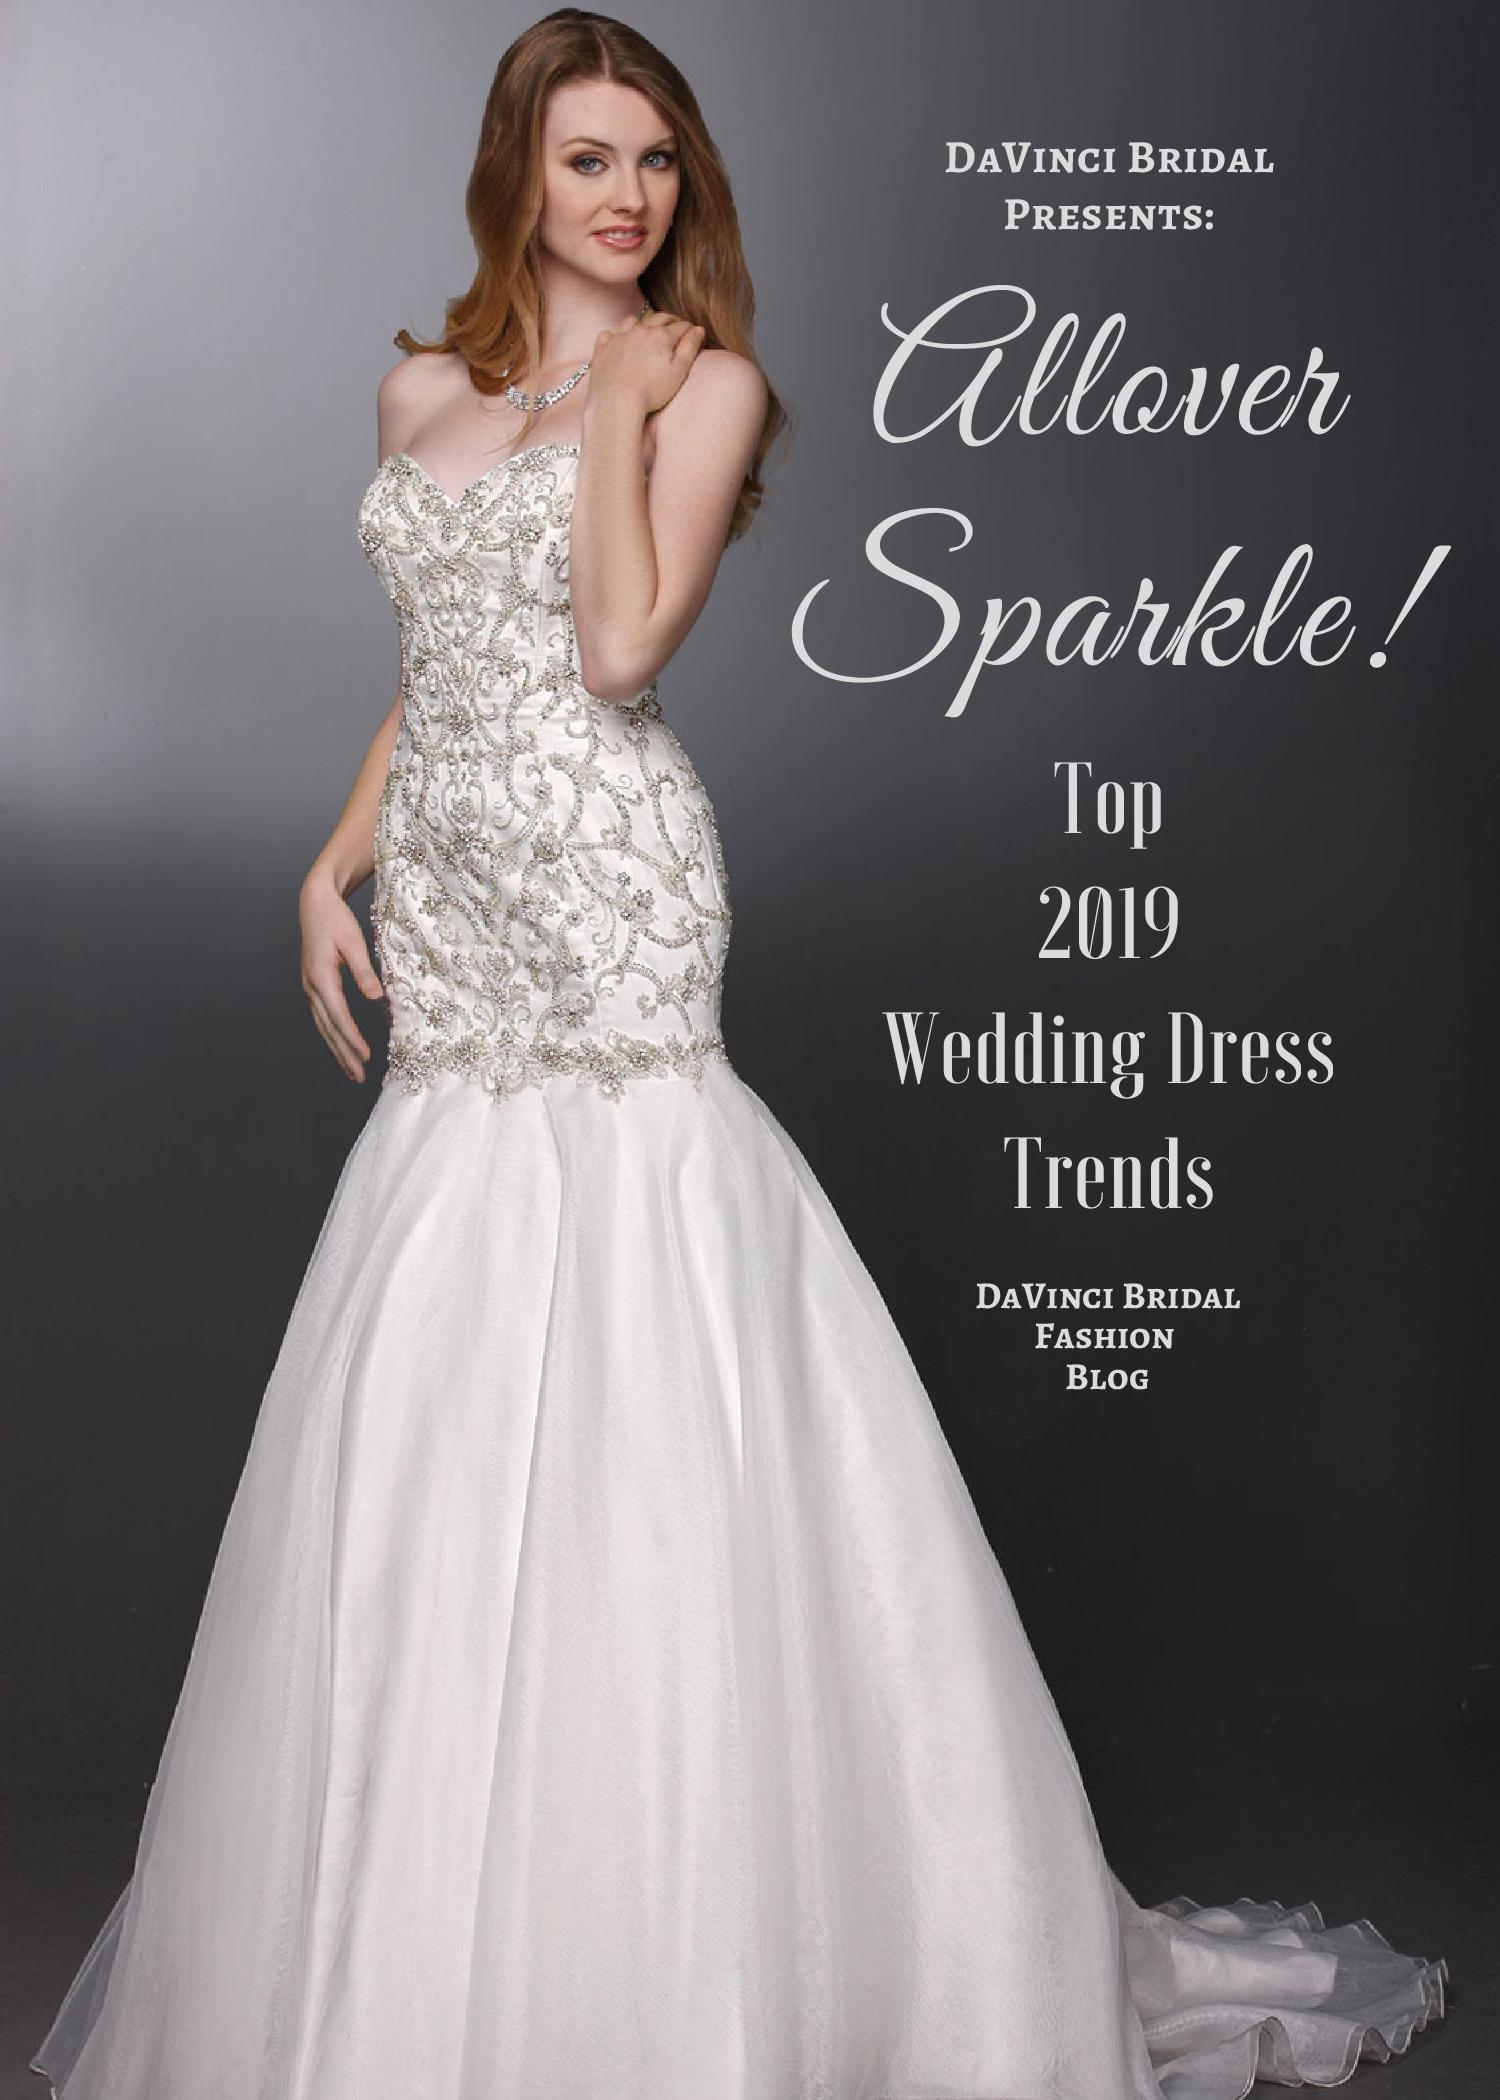 67e969541c0 Top 2019 Wedding Dress Trends Allover Sparkle – DaVinci Bridal Fashion Blog